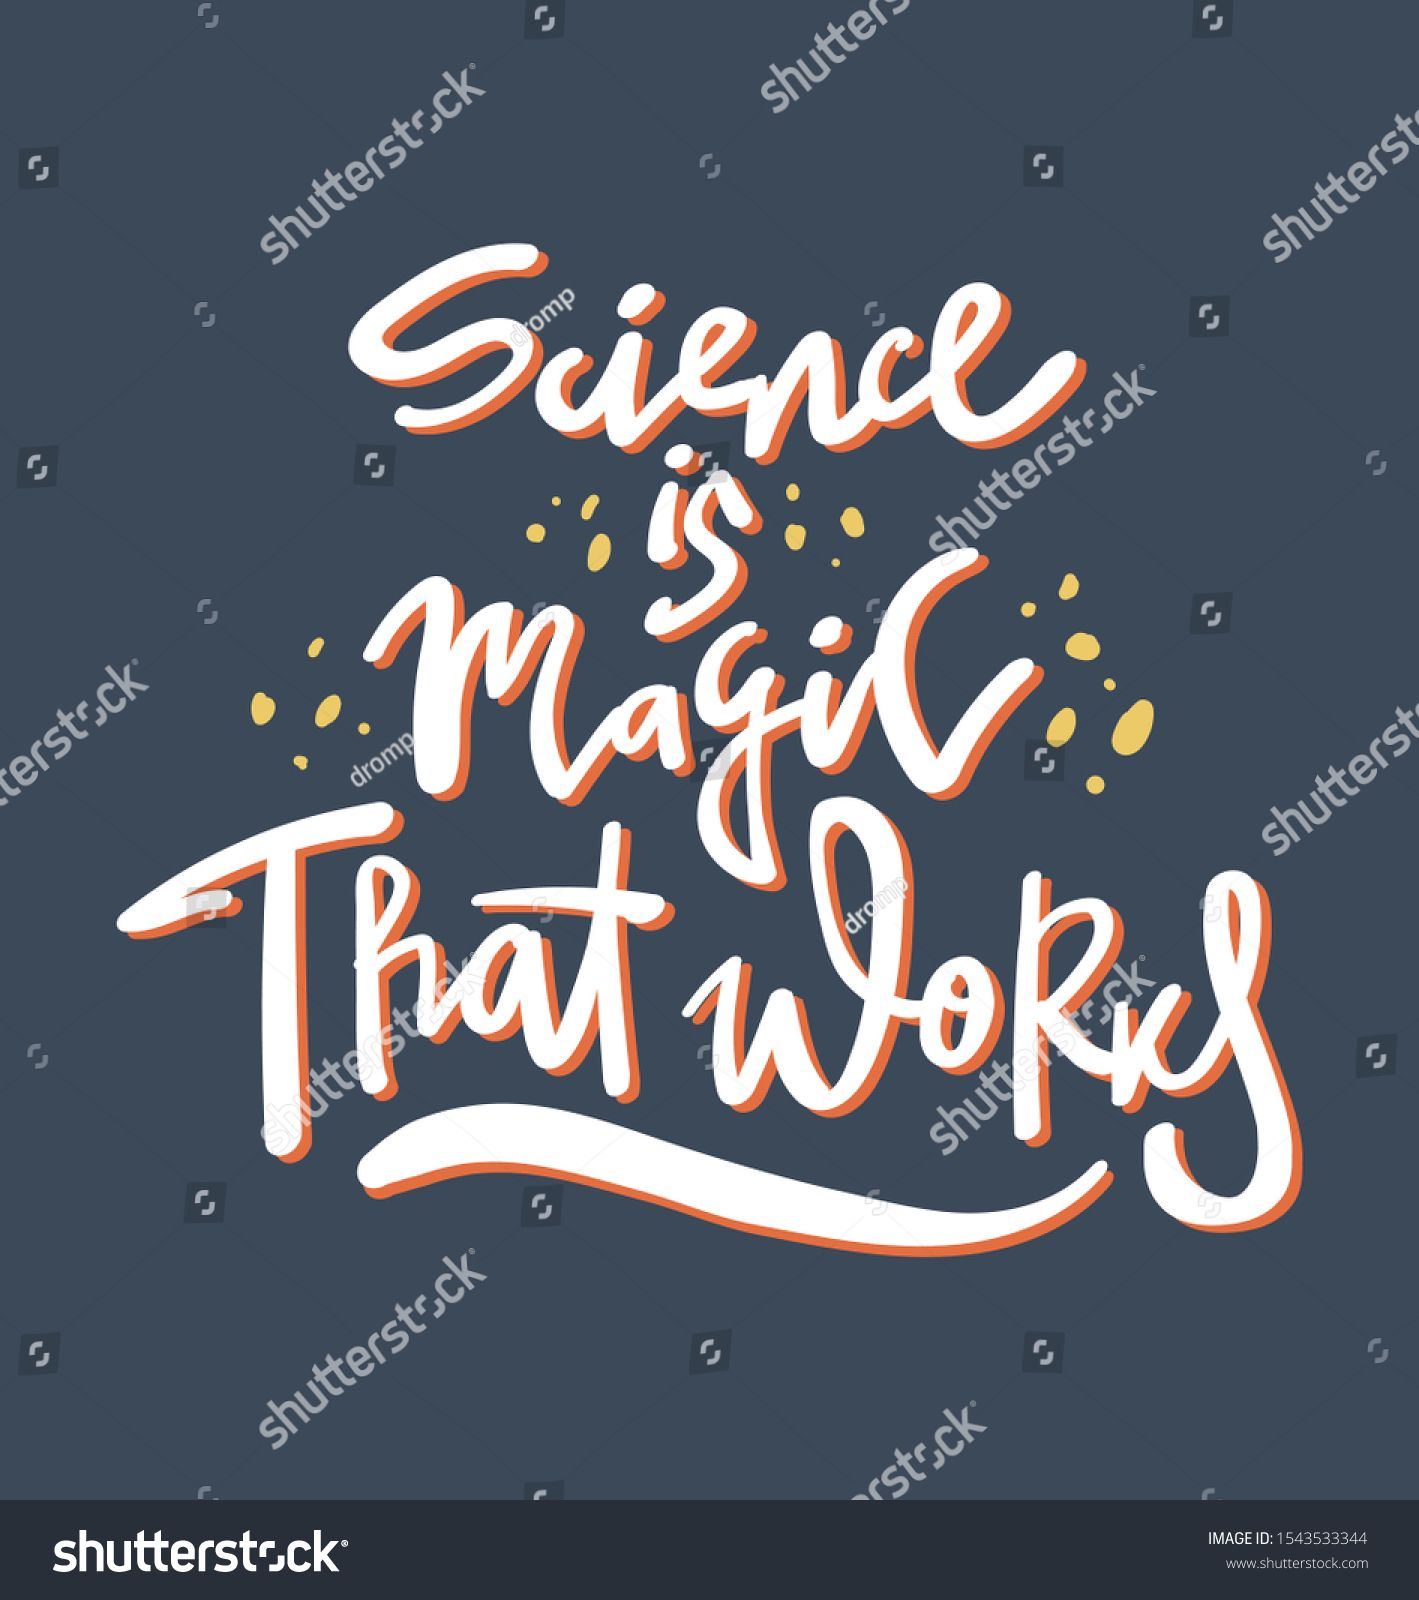 science is magic that works  hand drawn message funny lettering quote retro style poster inscription Funny tshirt print badge design